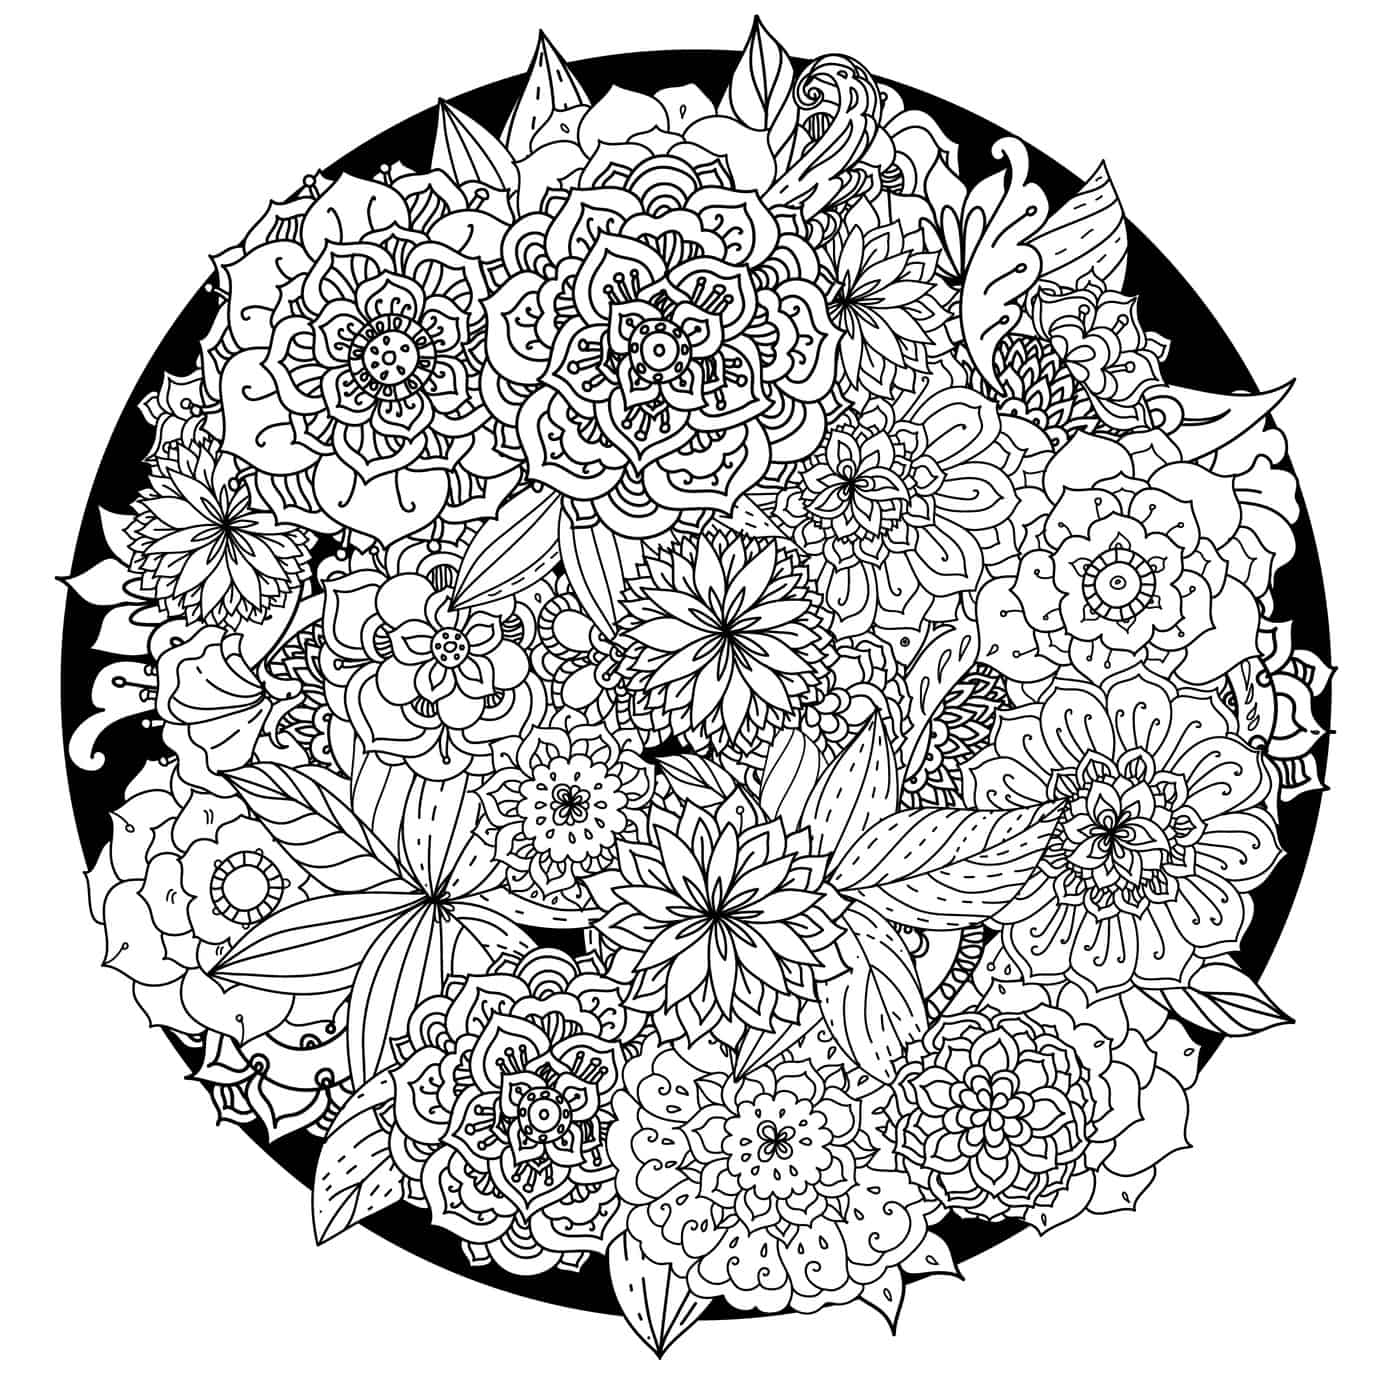 the free coloring pages below if you can t find any coloring books